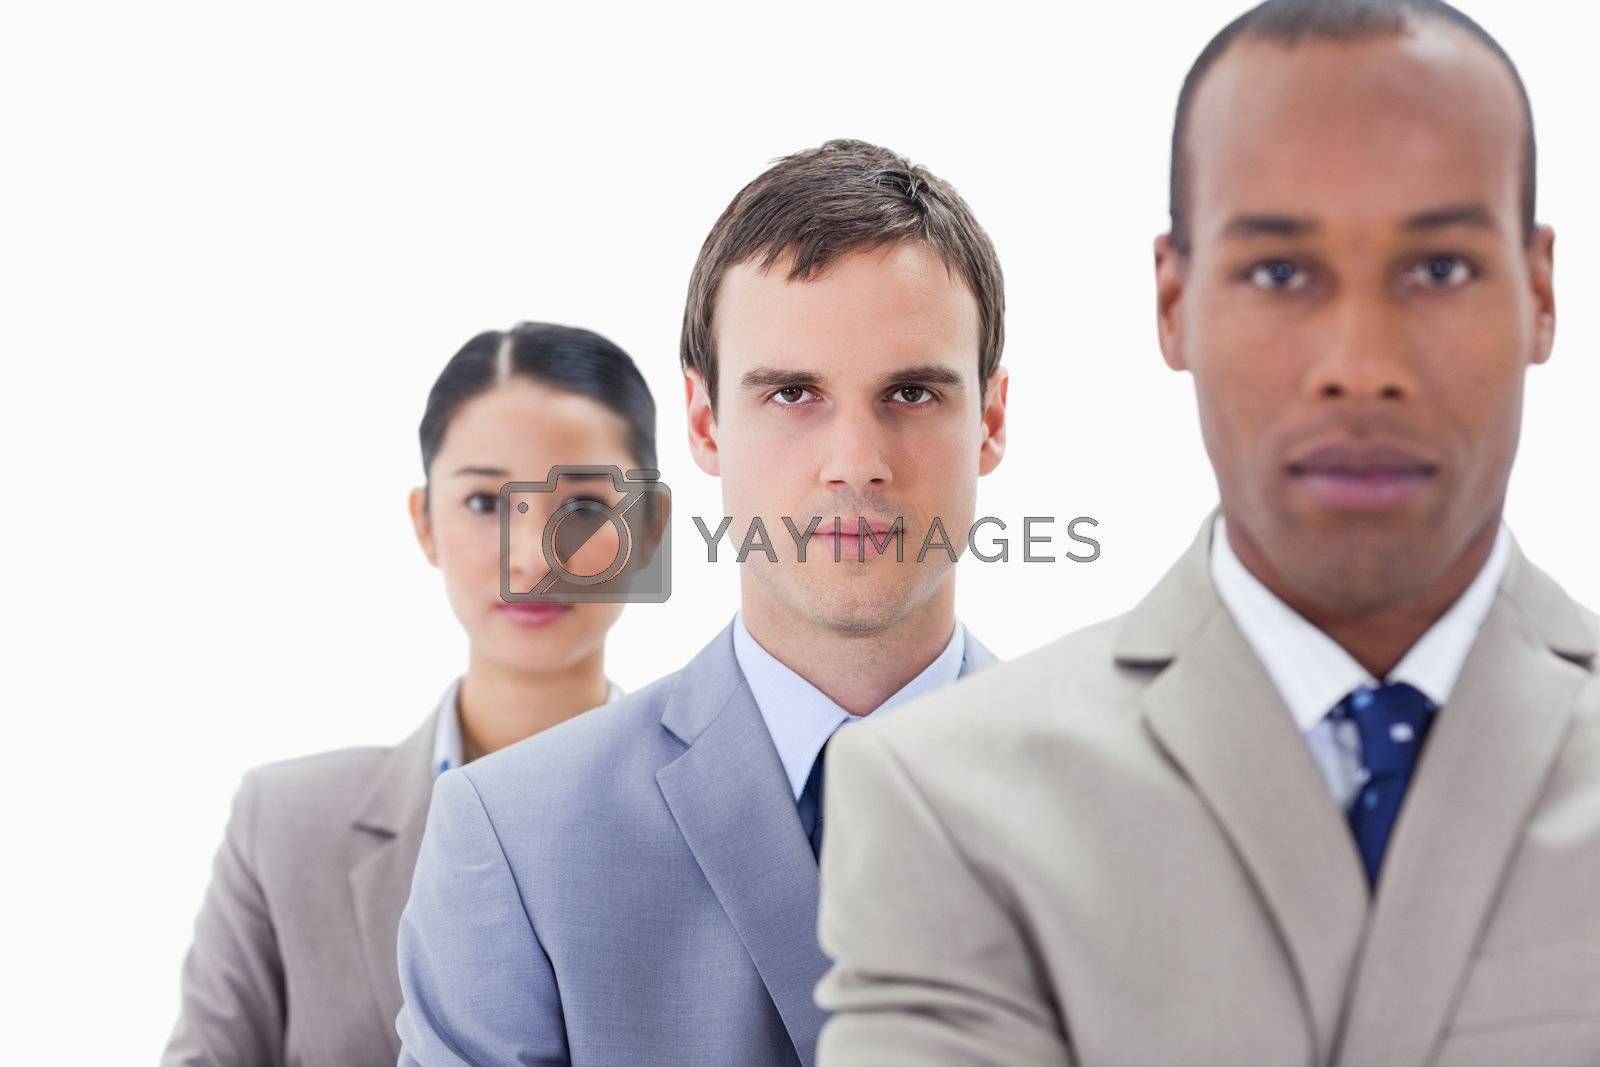 Big close-up of serious workmates in a single line looking straight with focus on the middle man